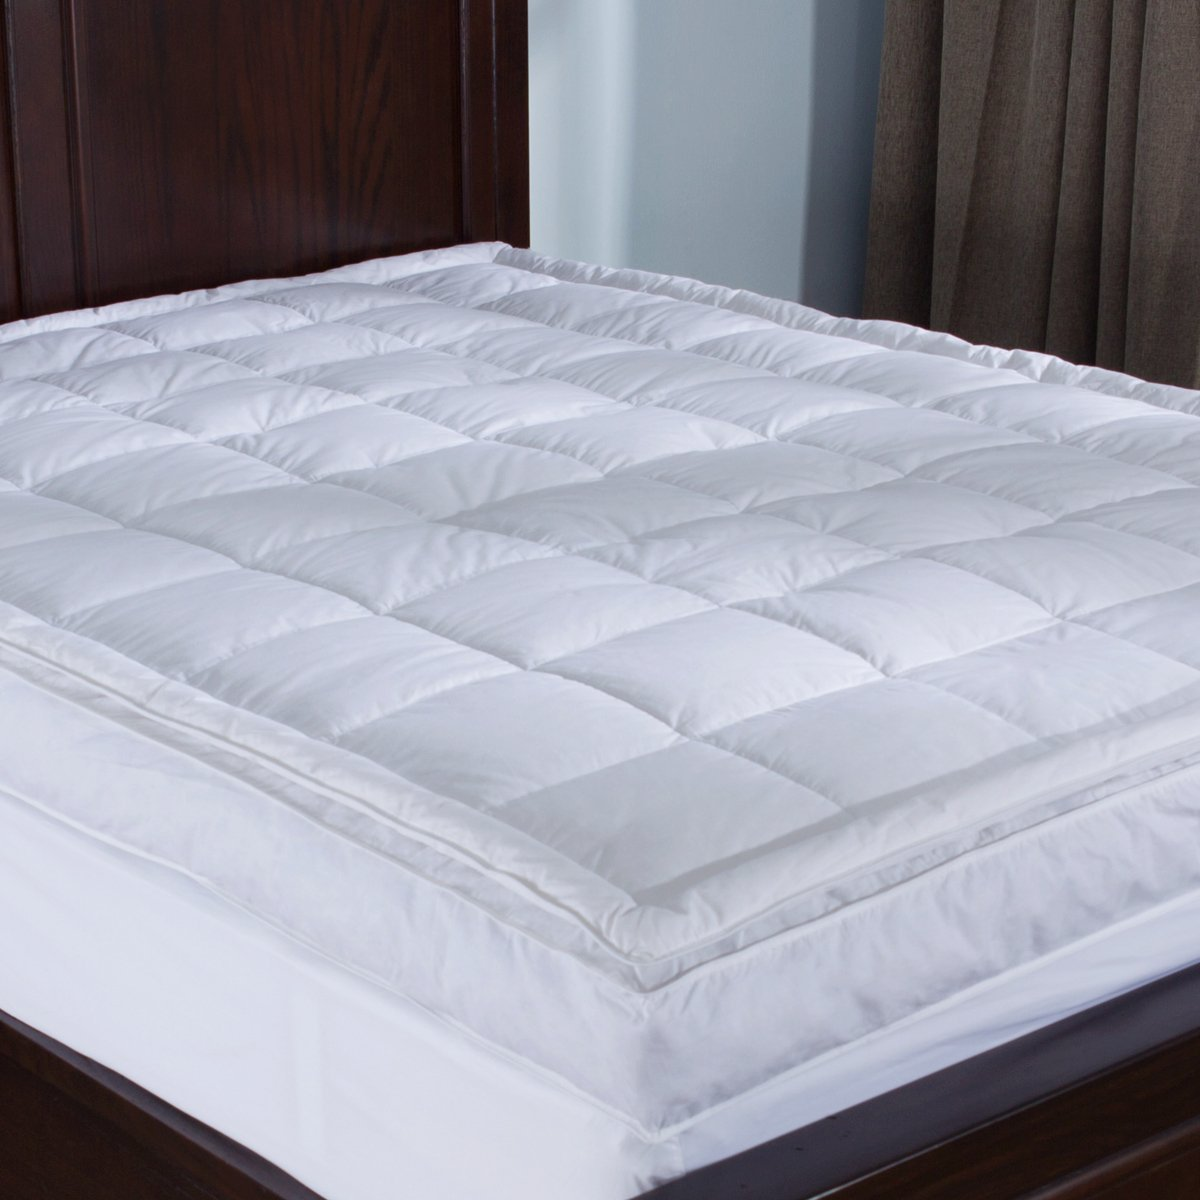 Puredown Luxurious Down-top Mattress Topper Baffle Box 4-inch Gusset Feather Bed (King)